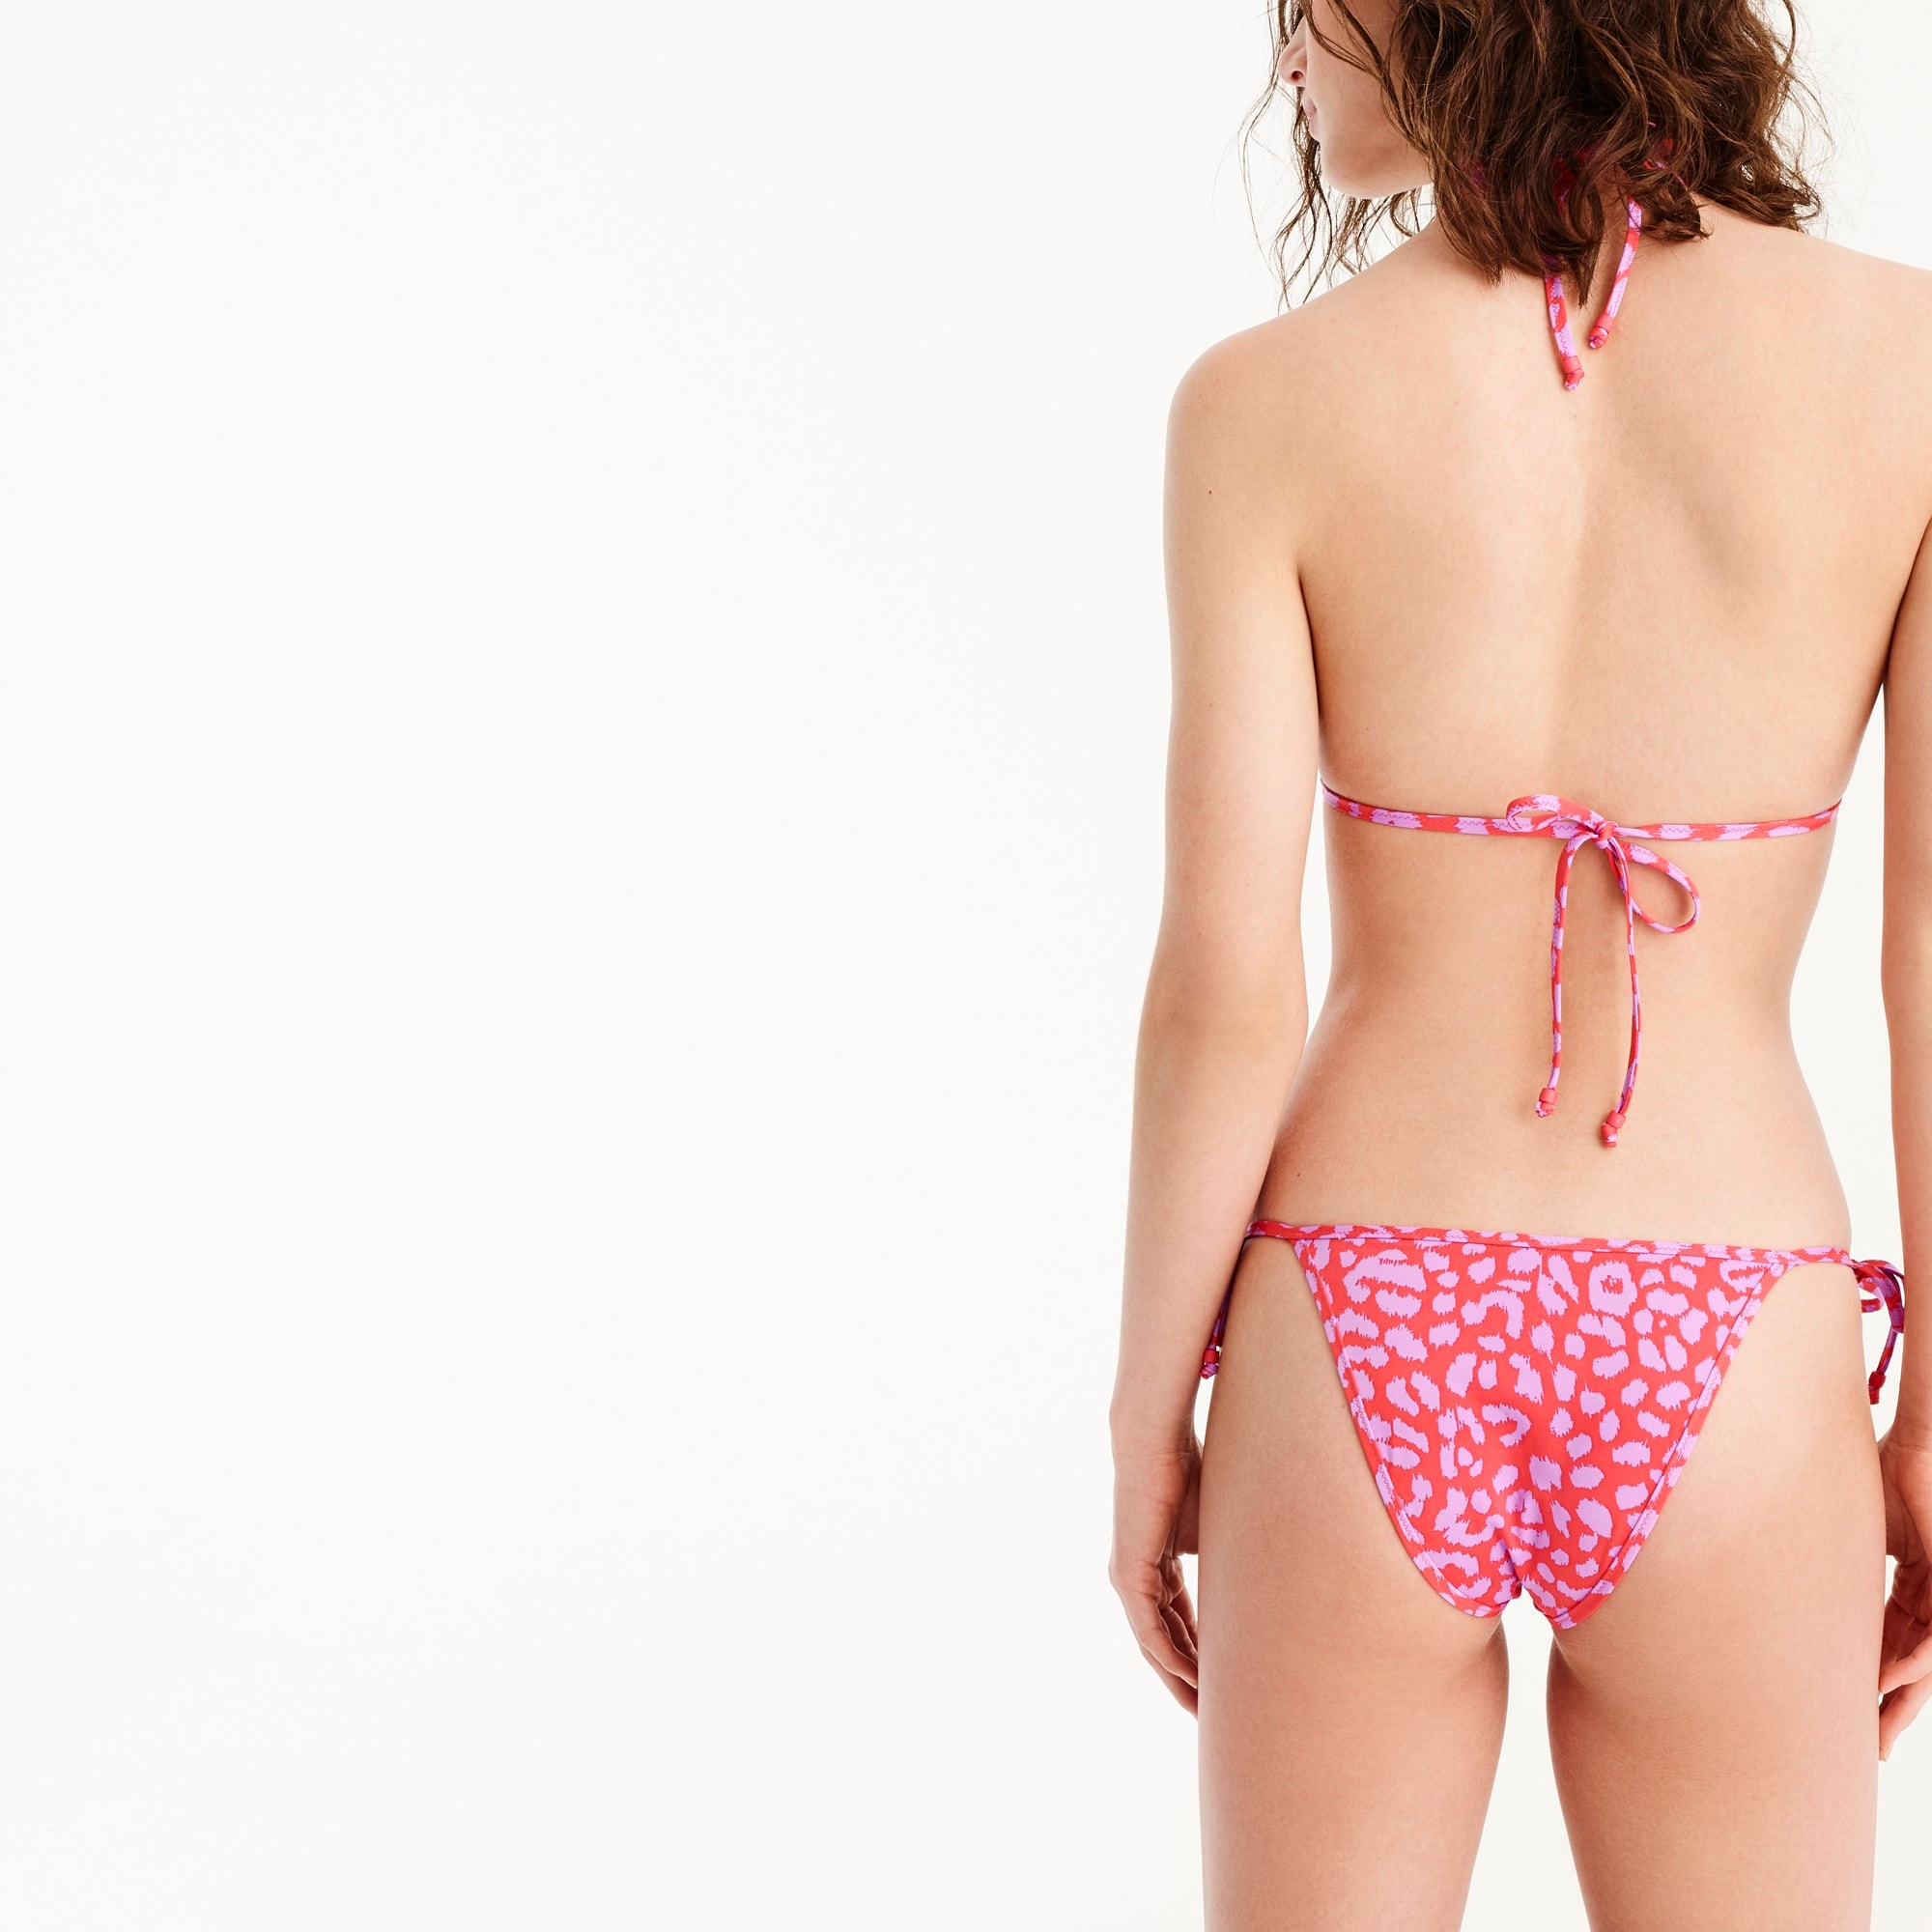 Image 2 for J.Crew Playa printed Miami string bikini bottom